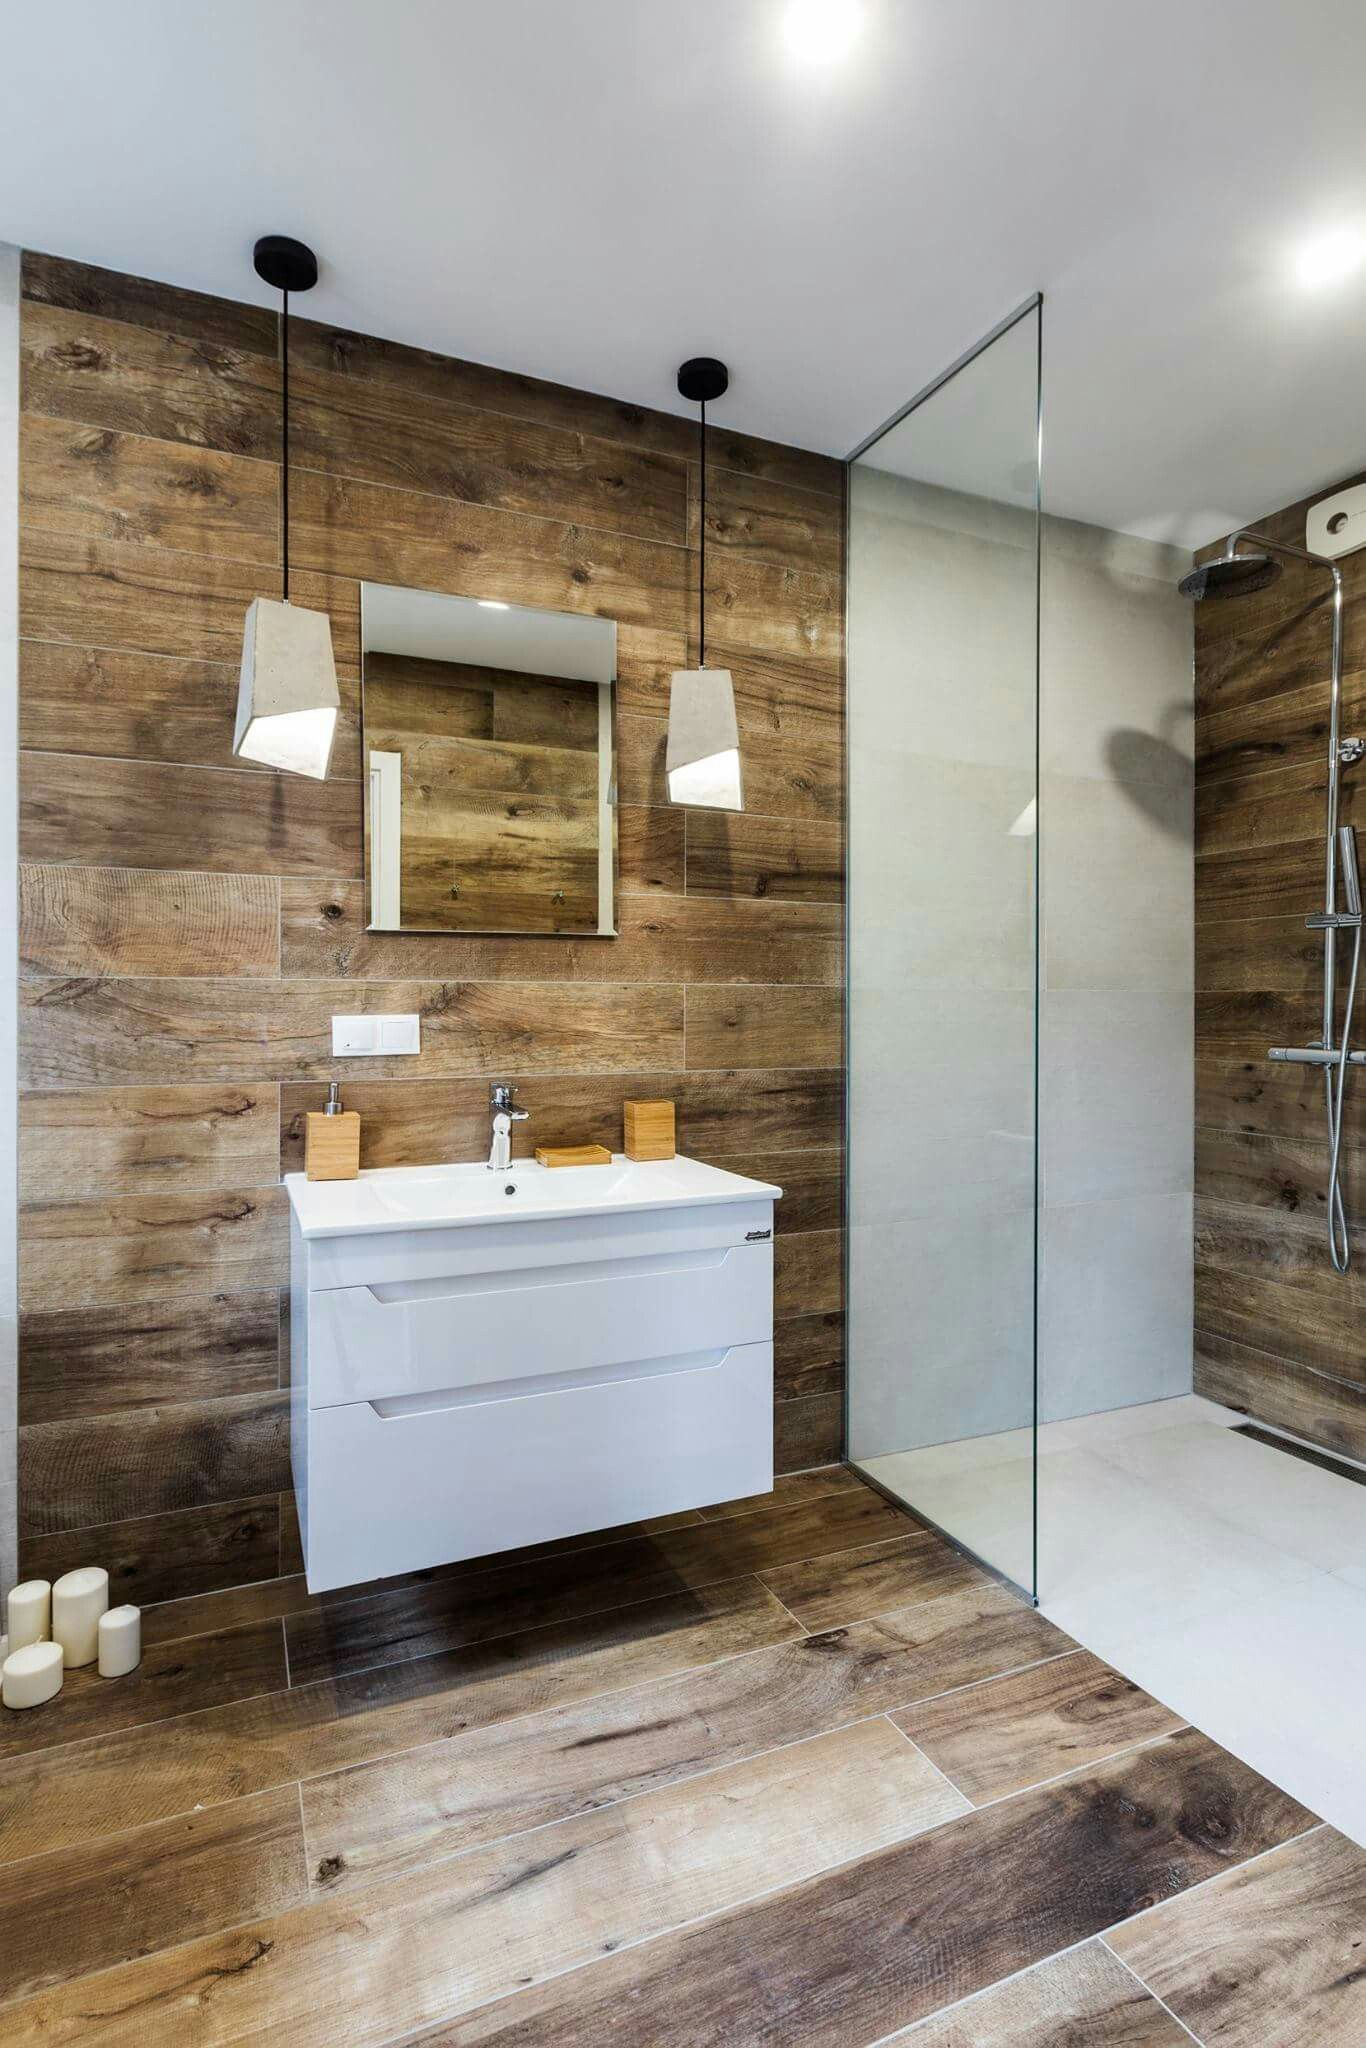 Pin By Suarasan Valentin On Case Bathroom Renovation Cost